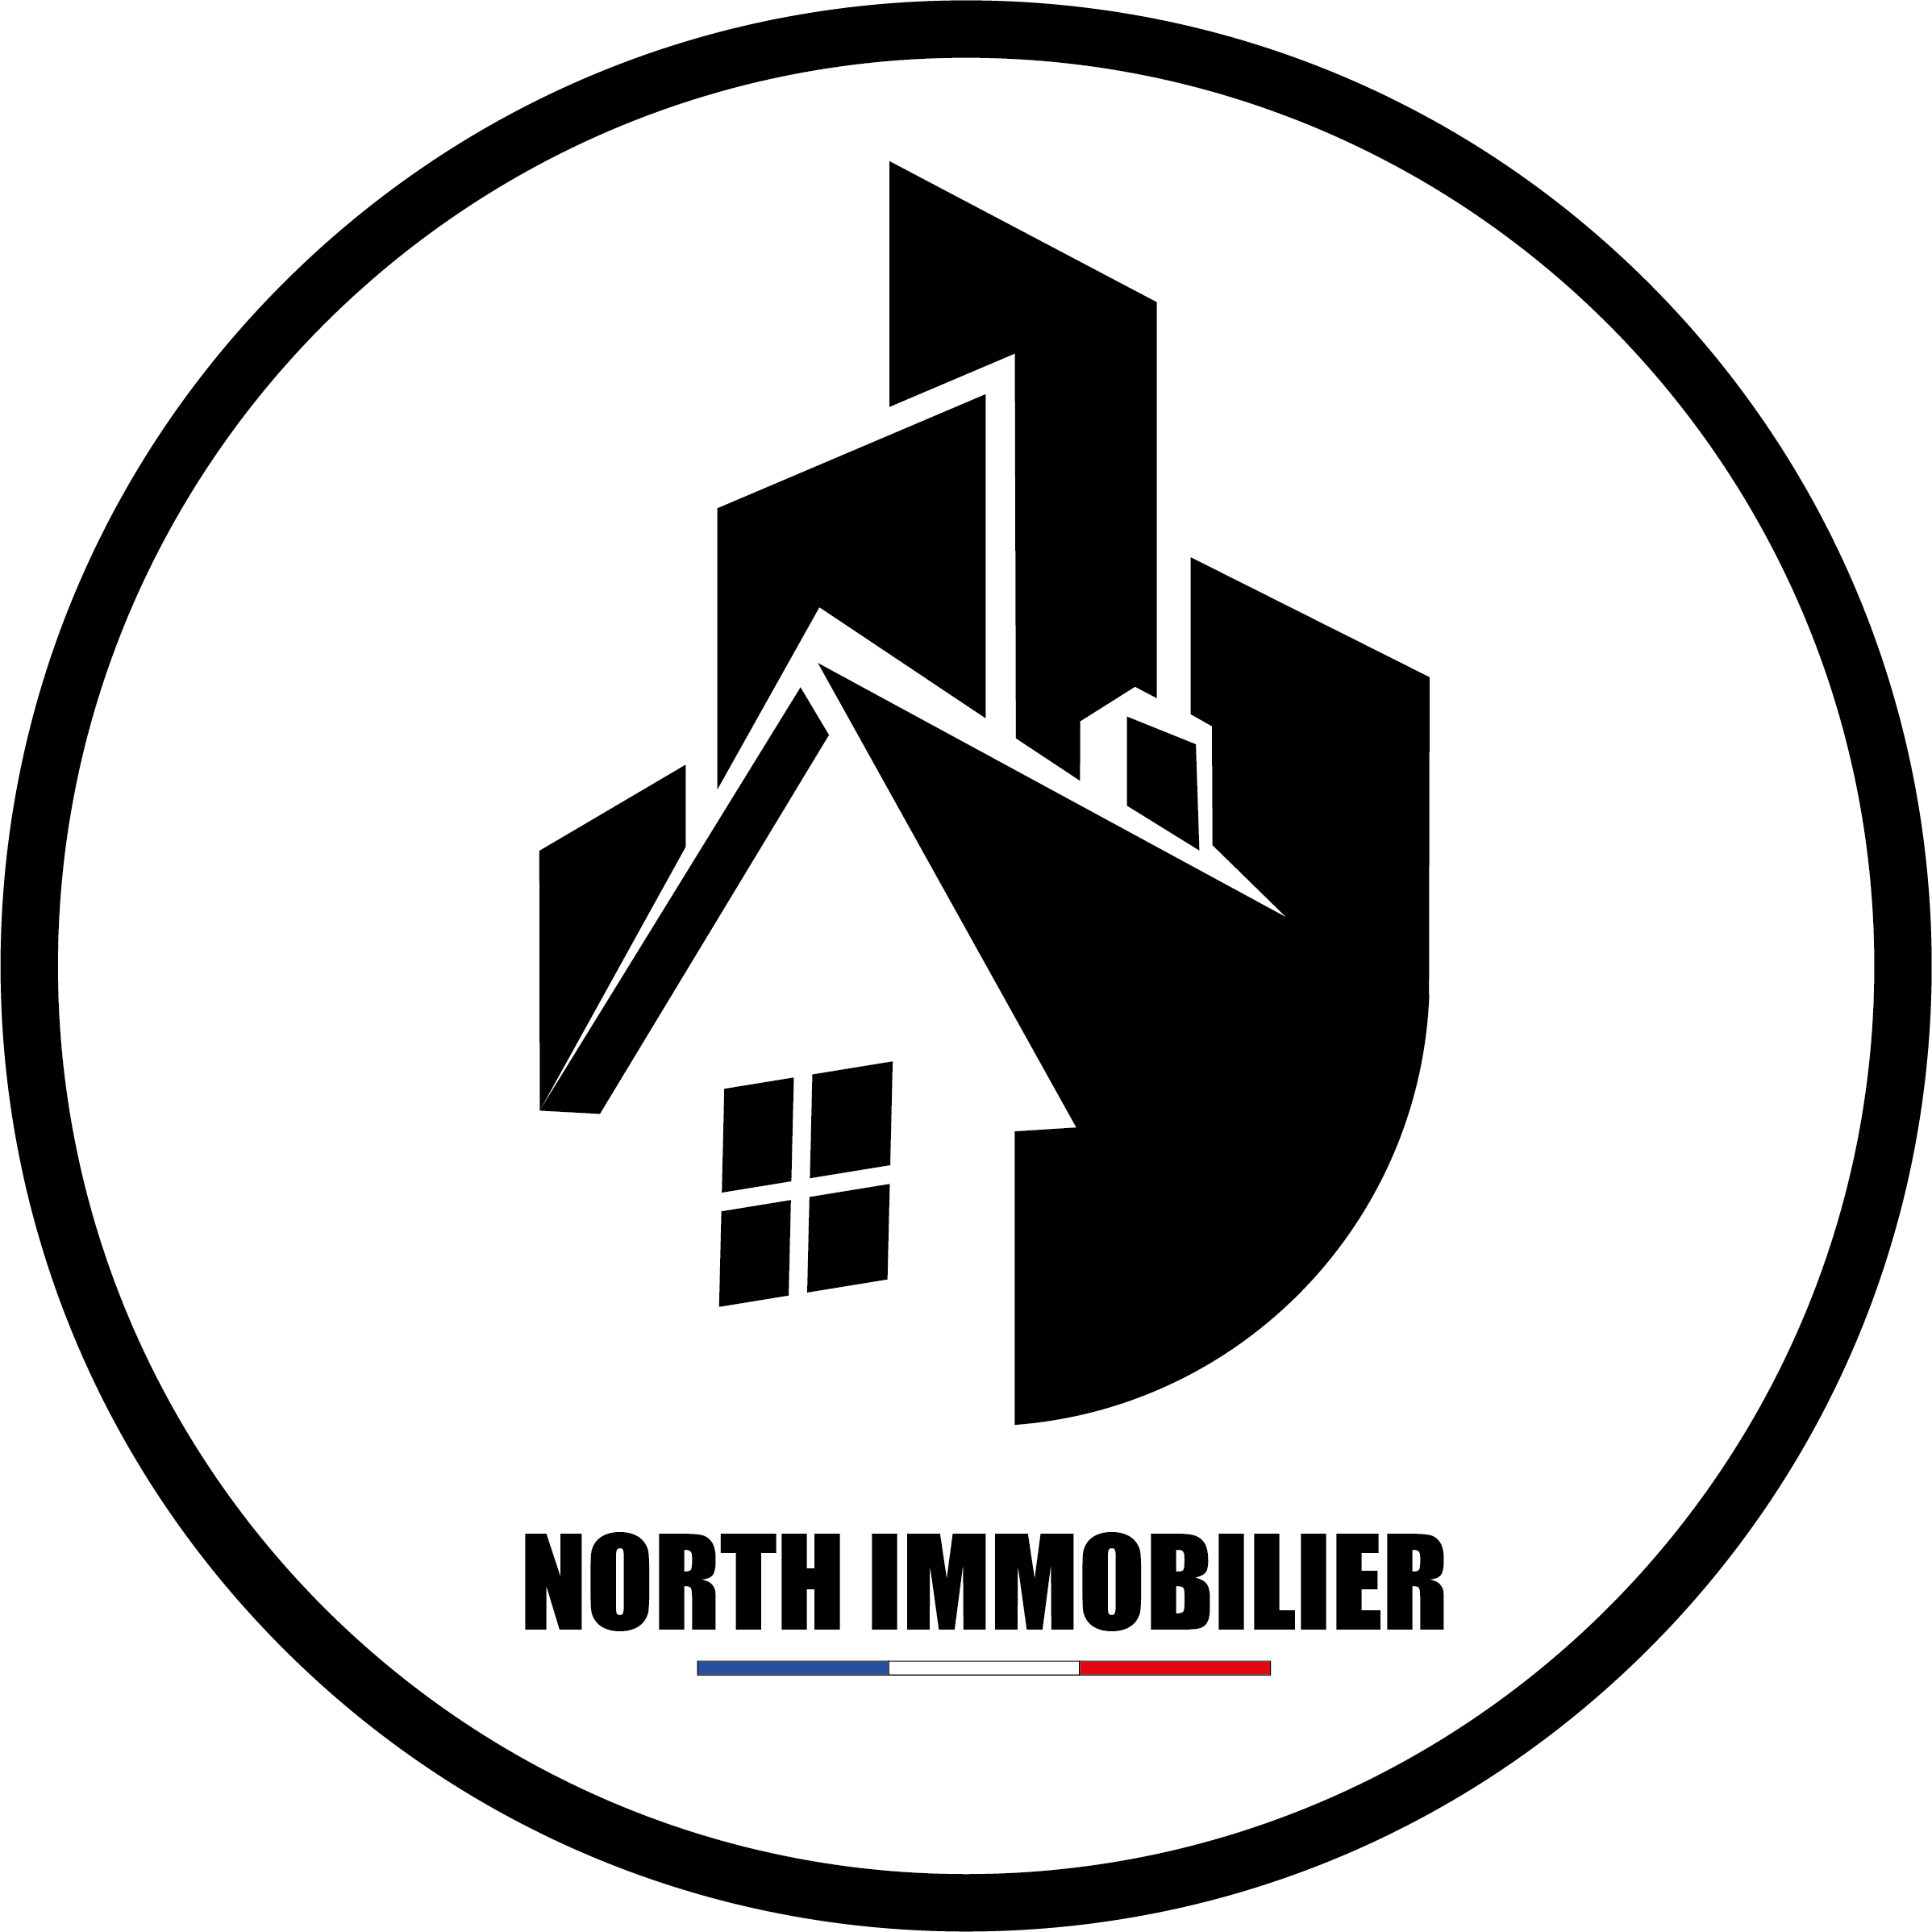 north immobilier logo